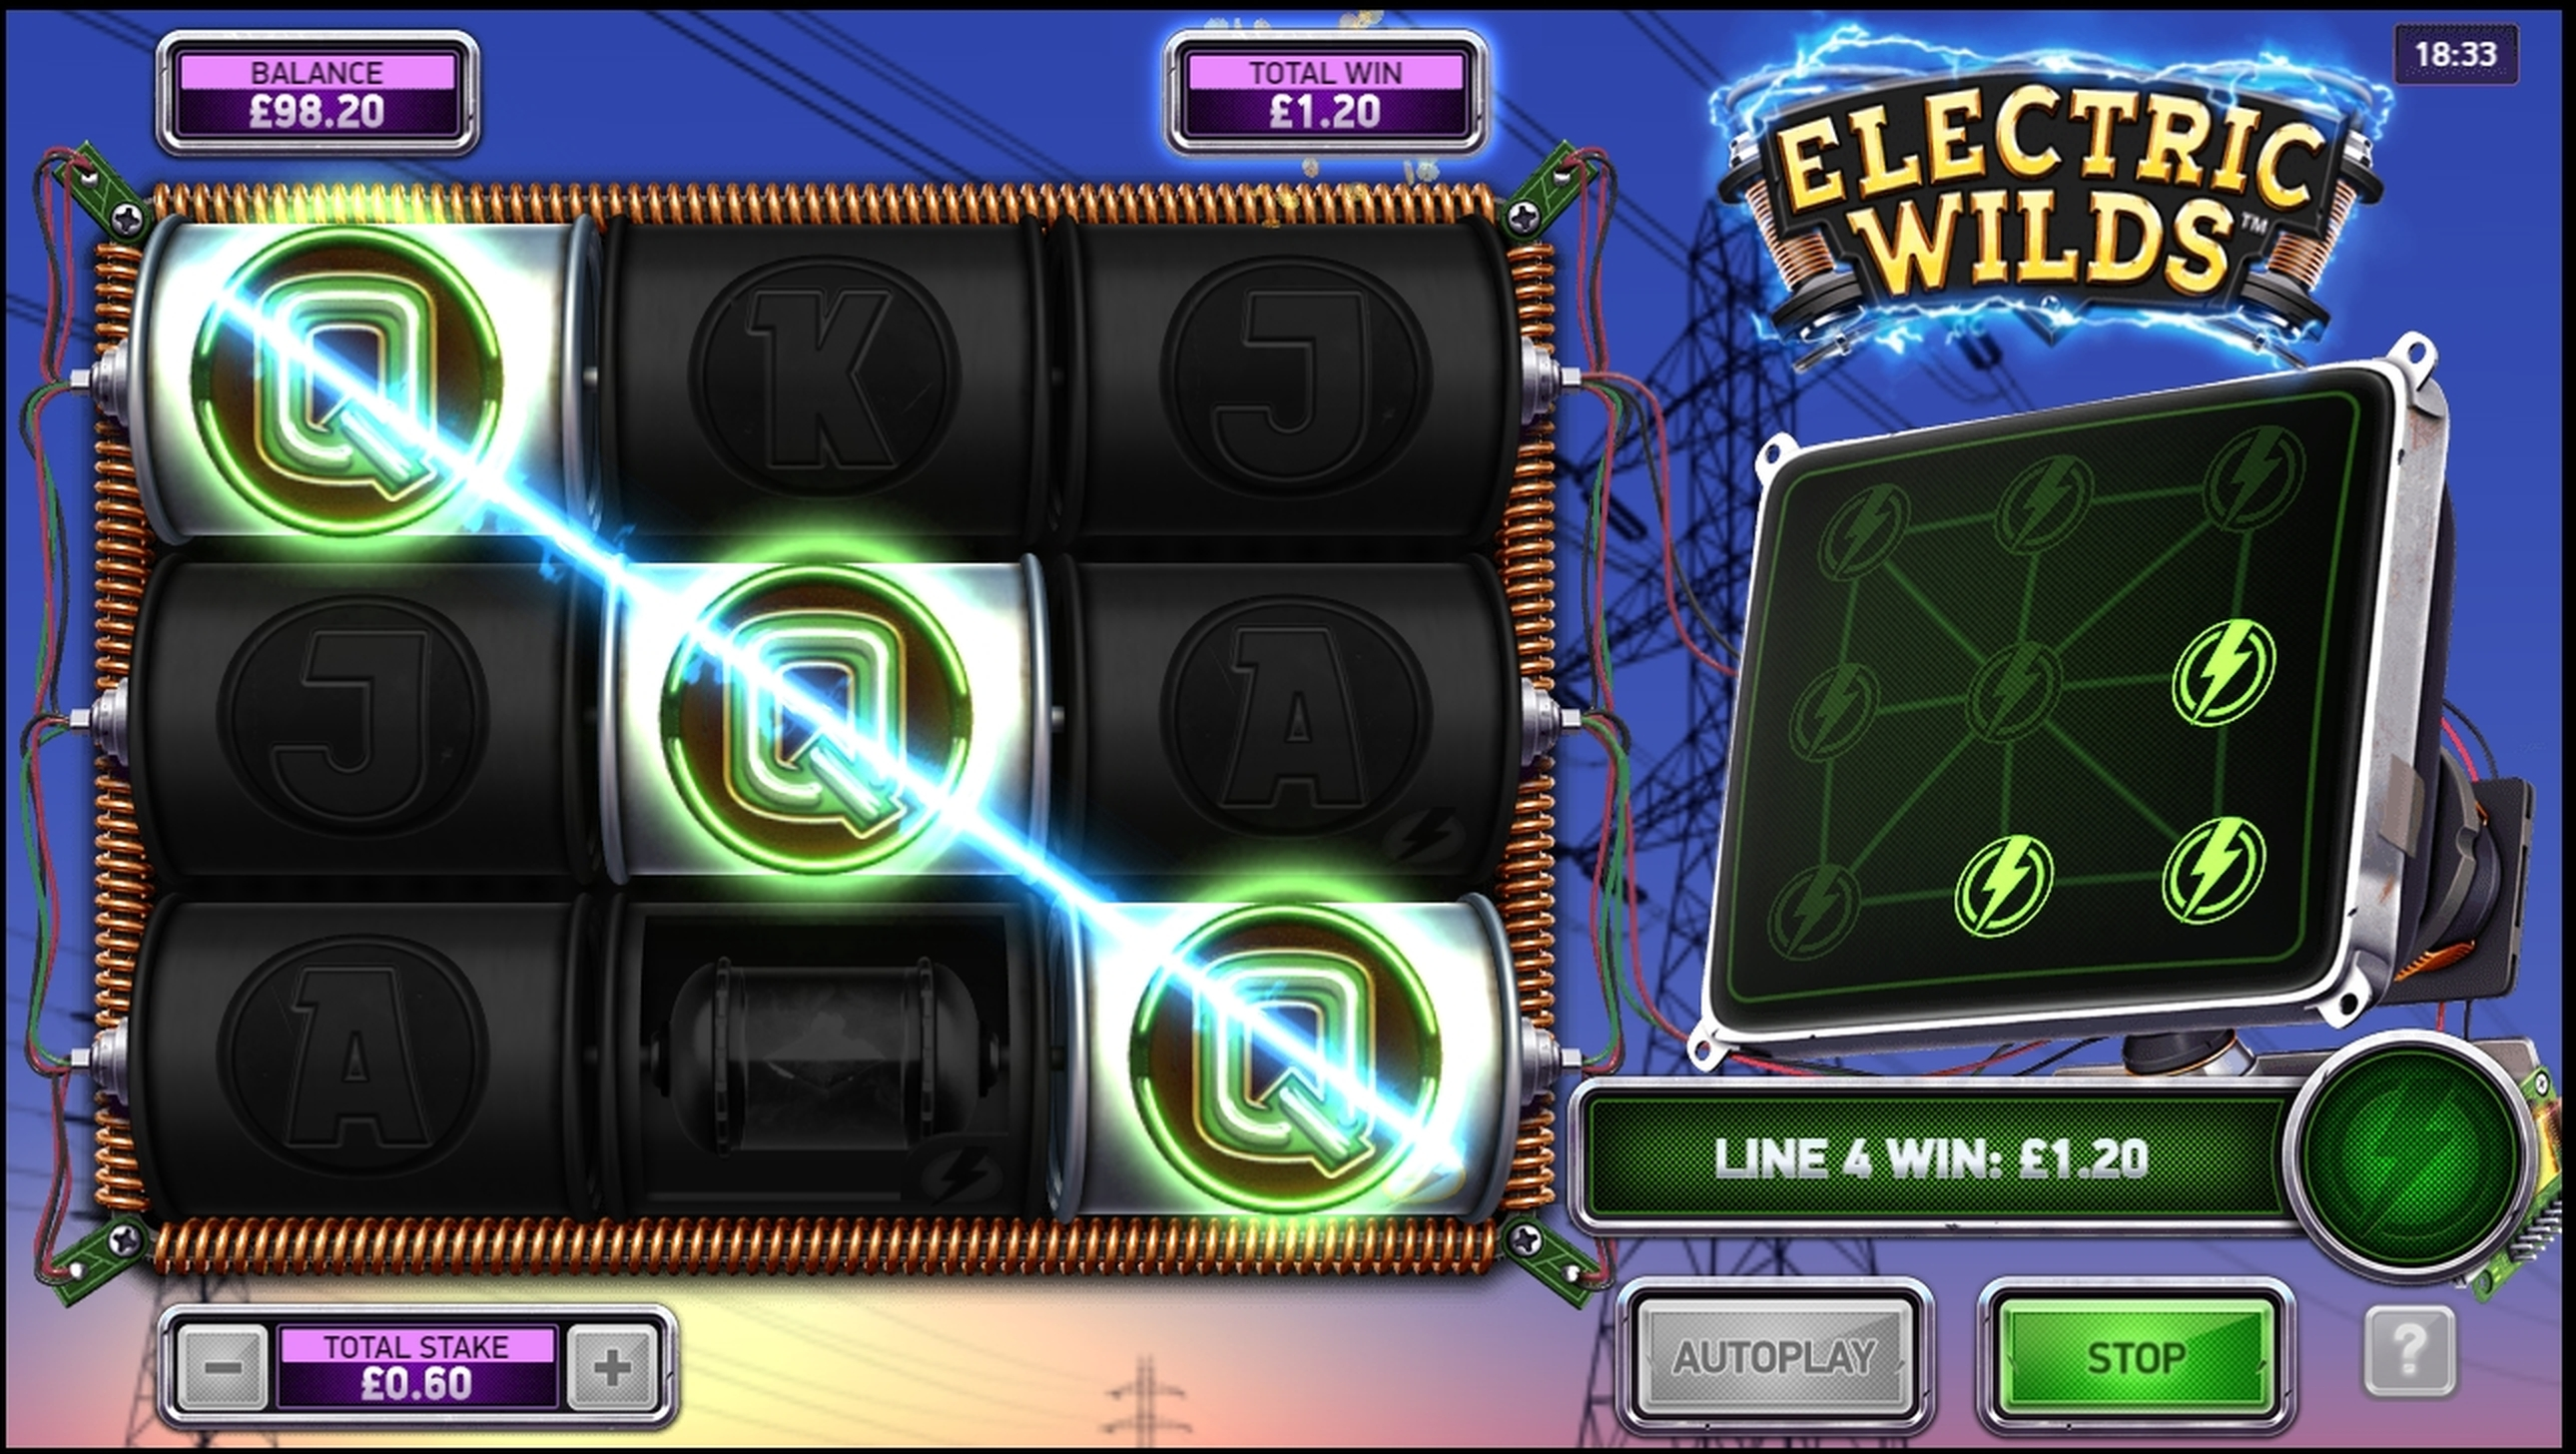 Win Money in Electric Wilds Free Slot Game by Northern Lights Gaming